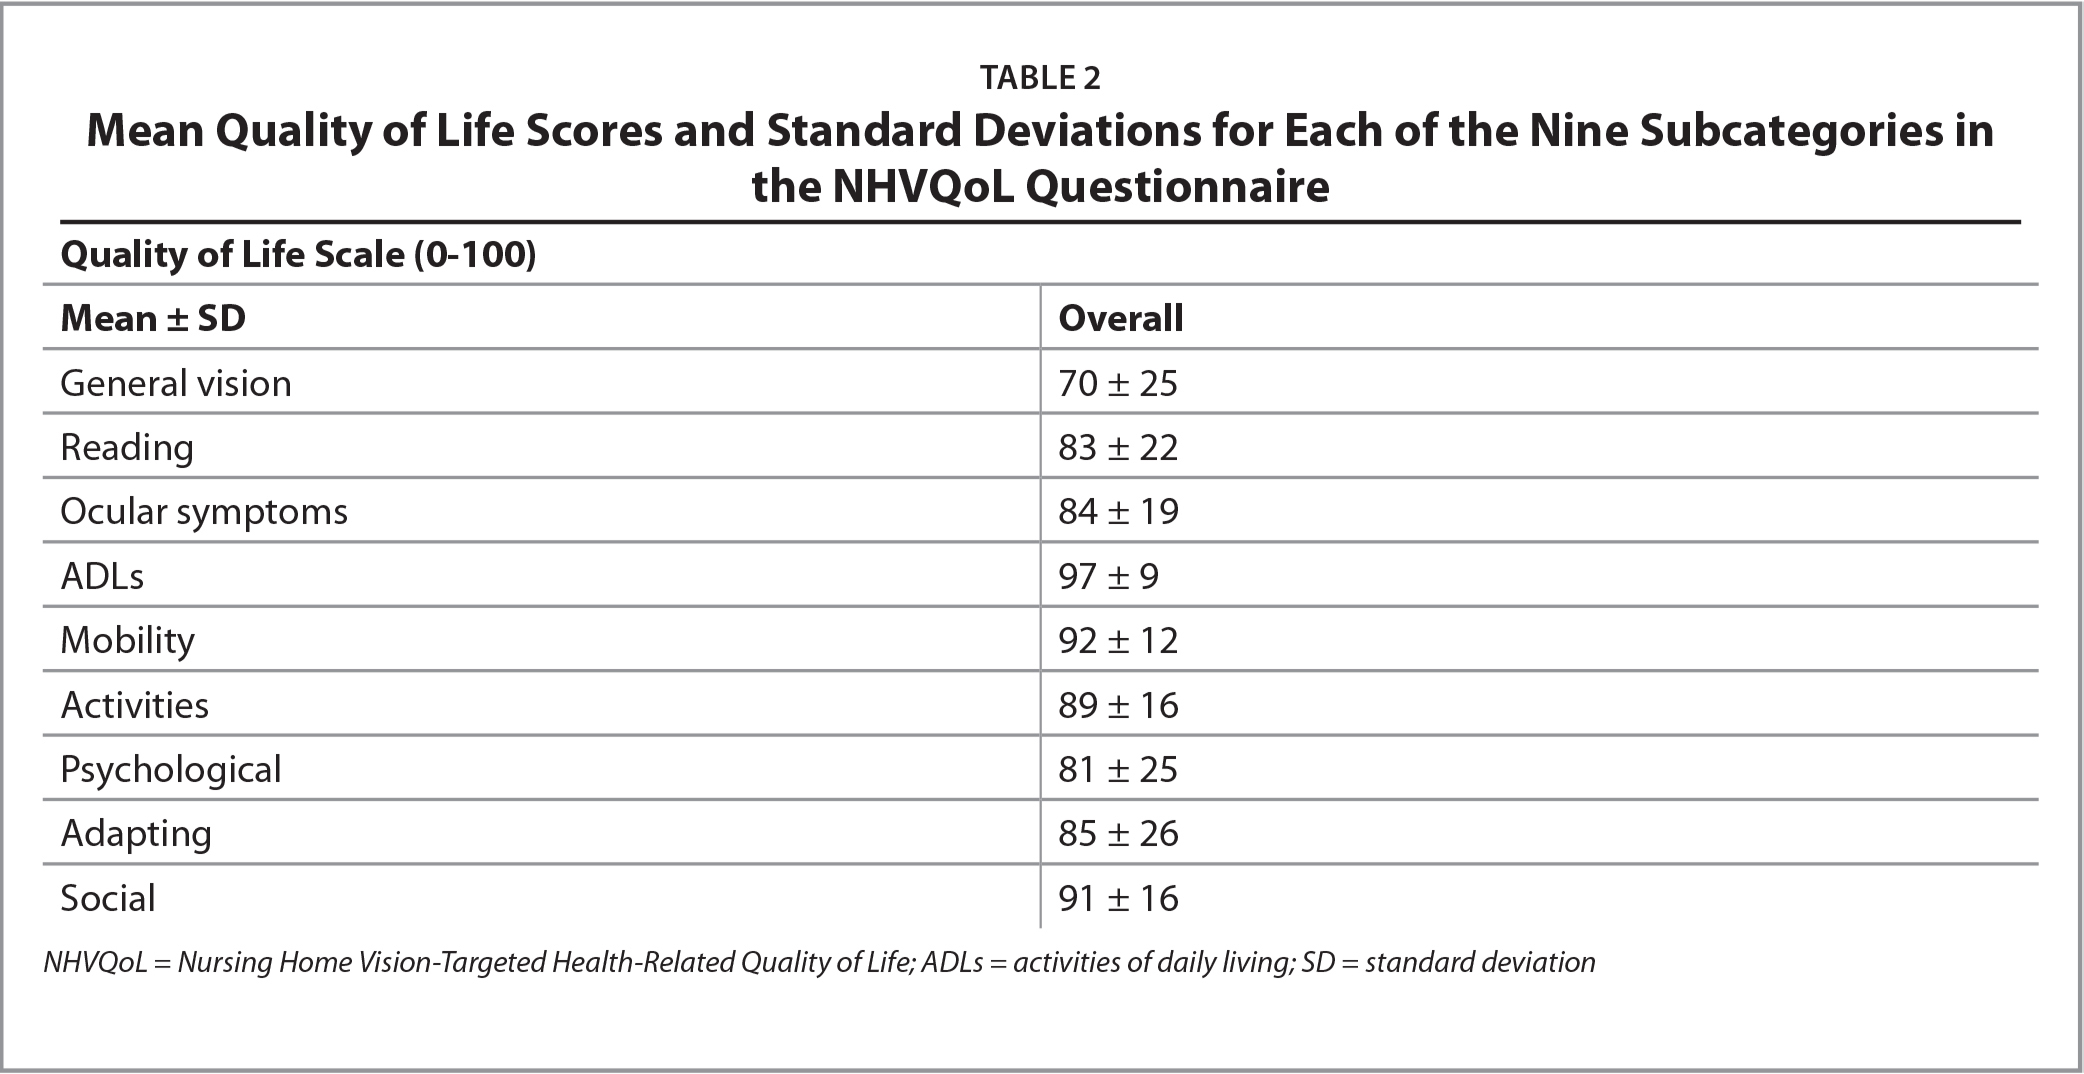 Mean Quality of Life Scores and Standard Deviations for Each of the Nine Subcategories in the NHVQoL Questionnaire